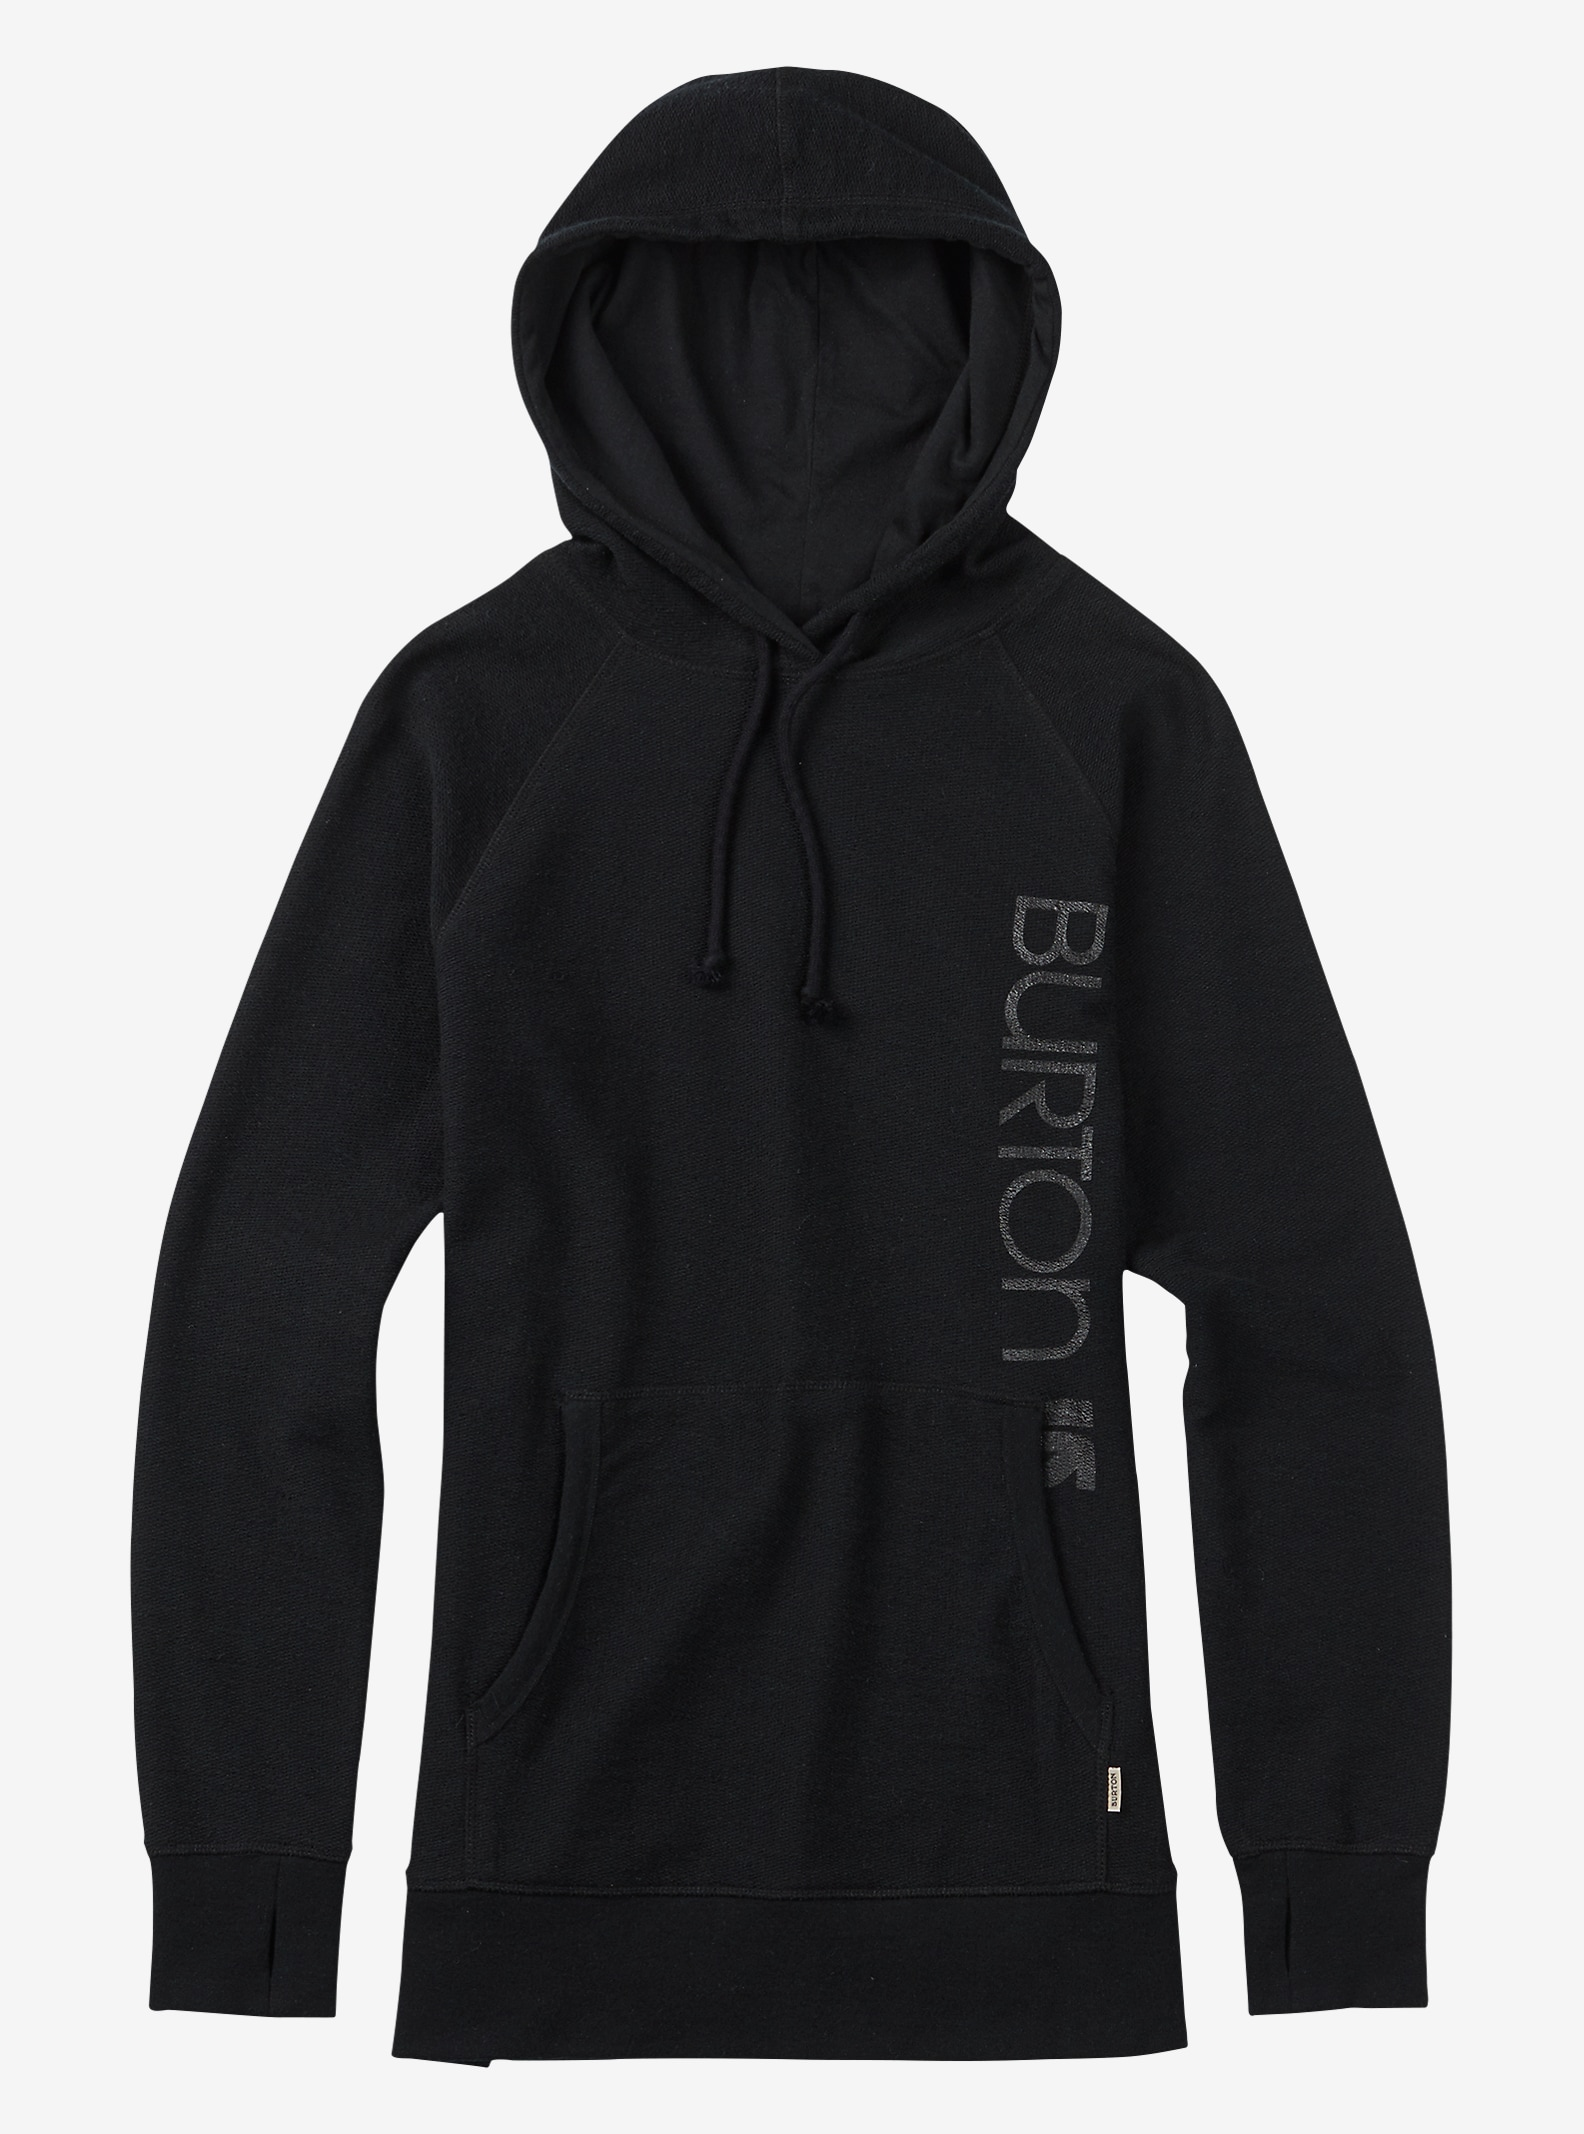 Burton Custom Antidote Hoodie angezeigt in True Black